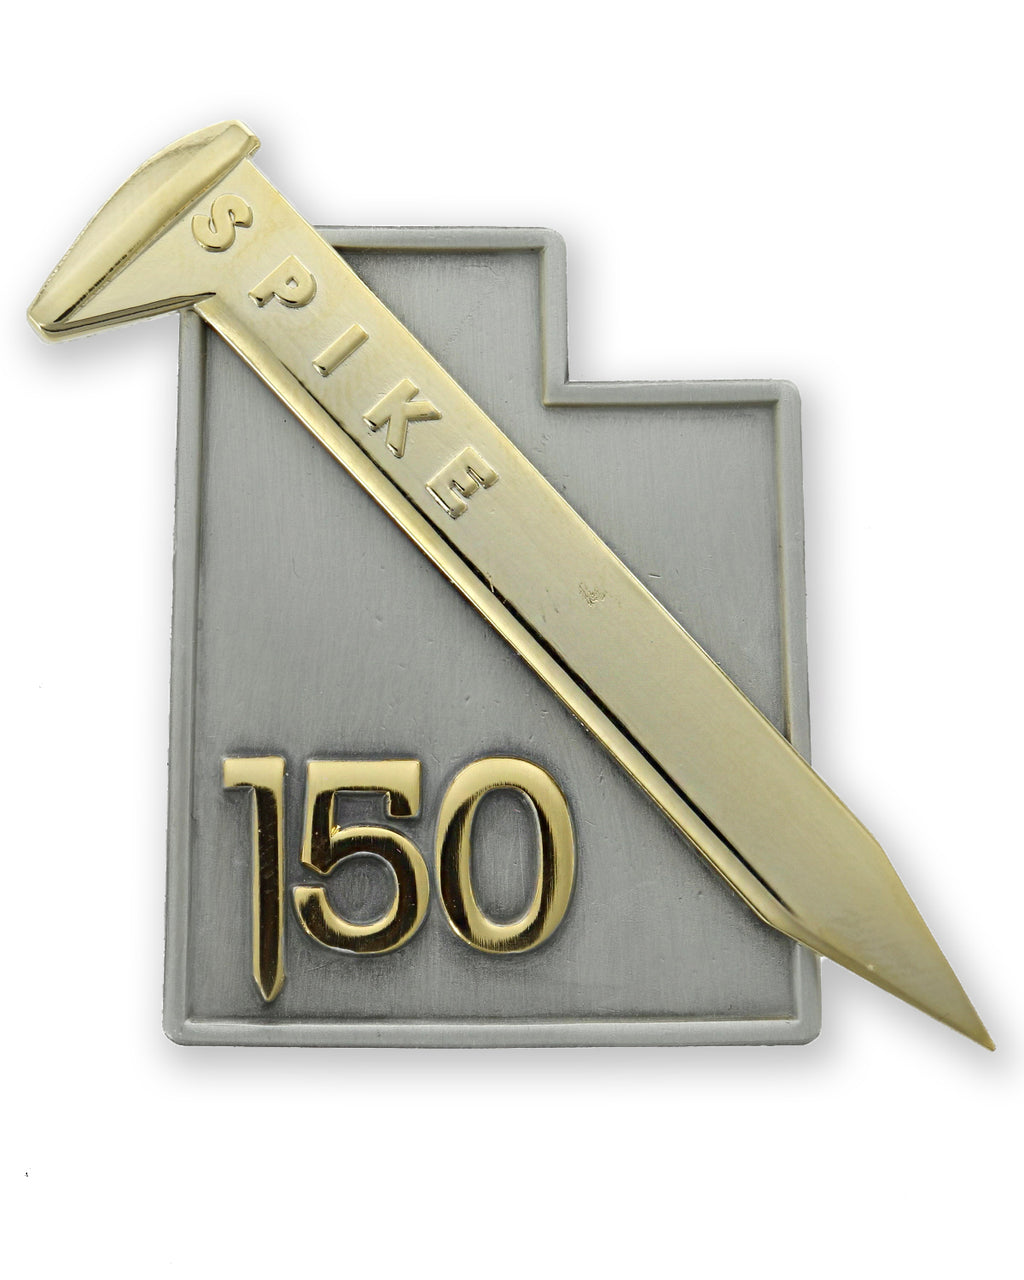 3D Golden Spike 150 Commemorative Pin